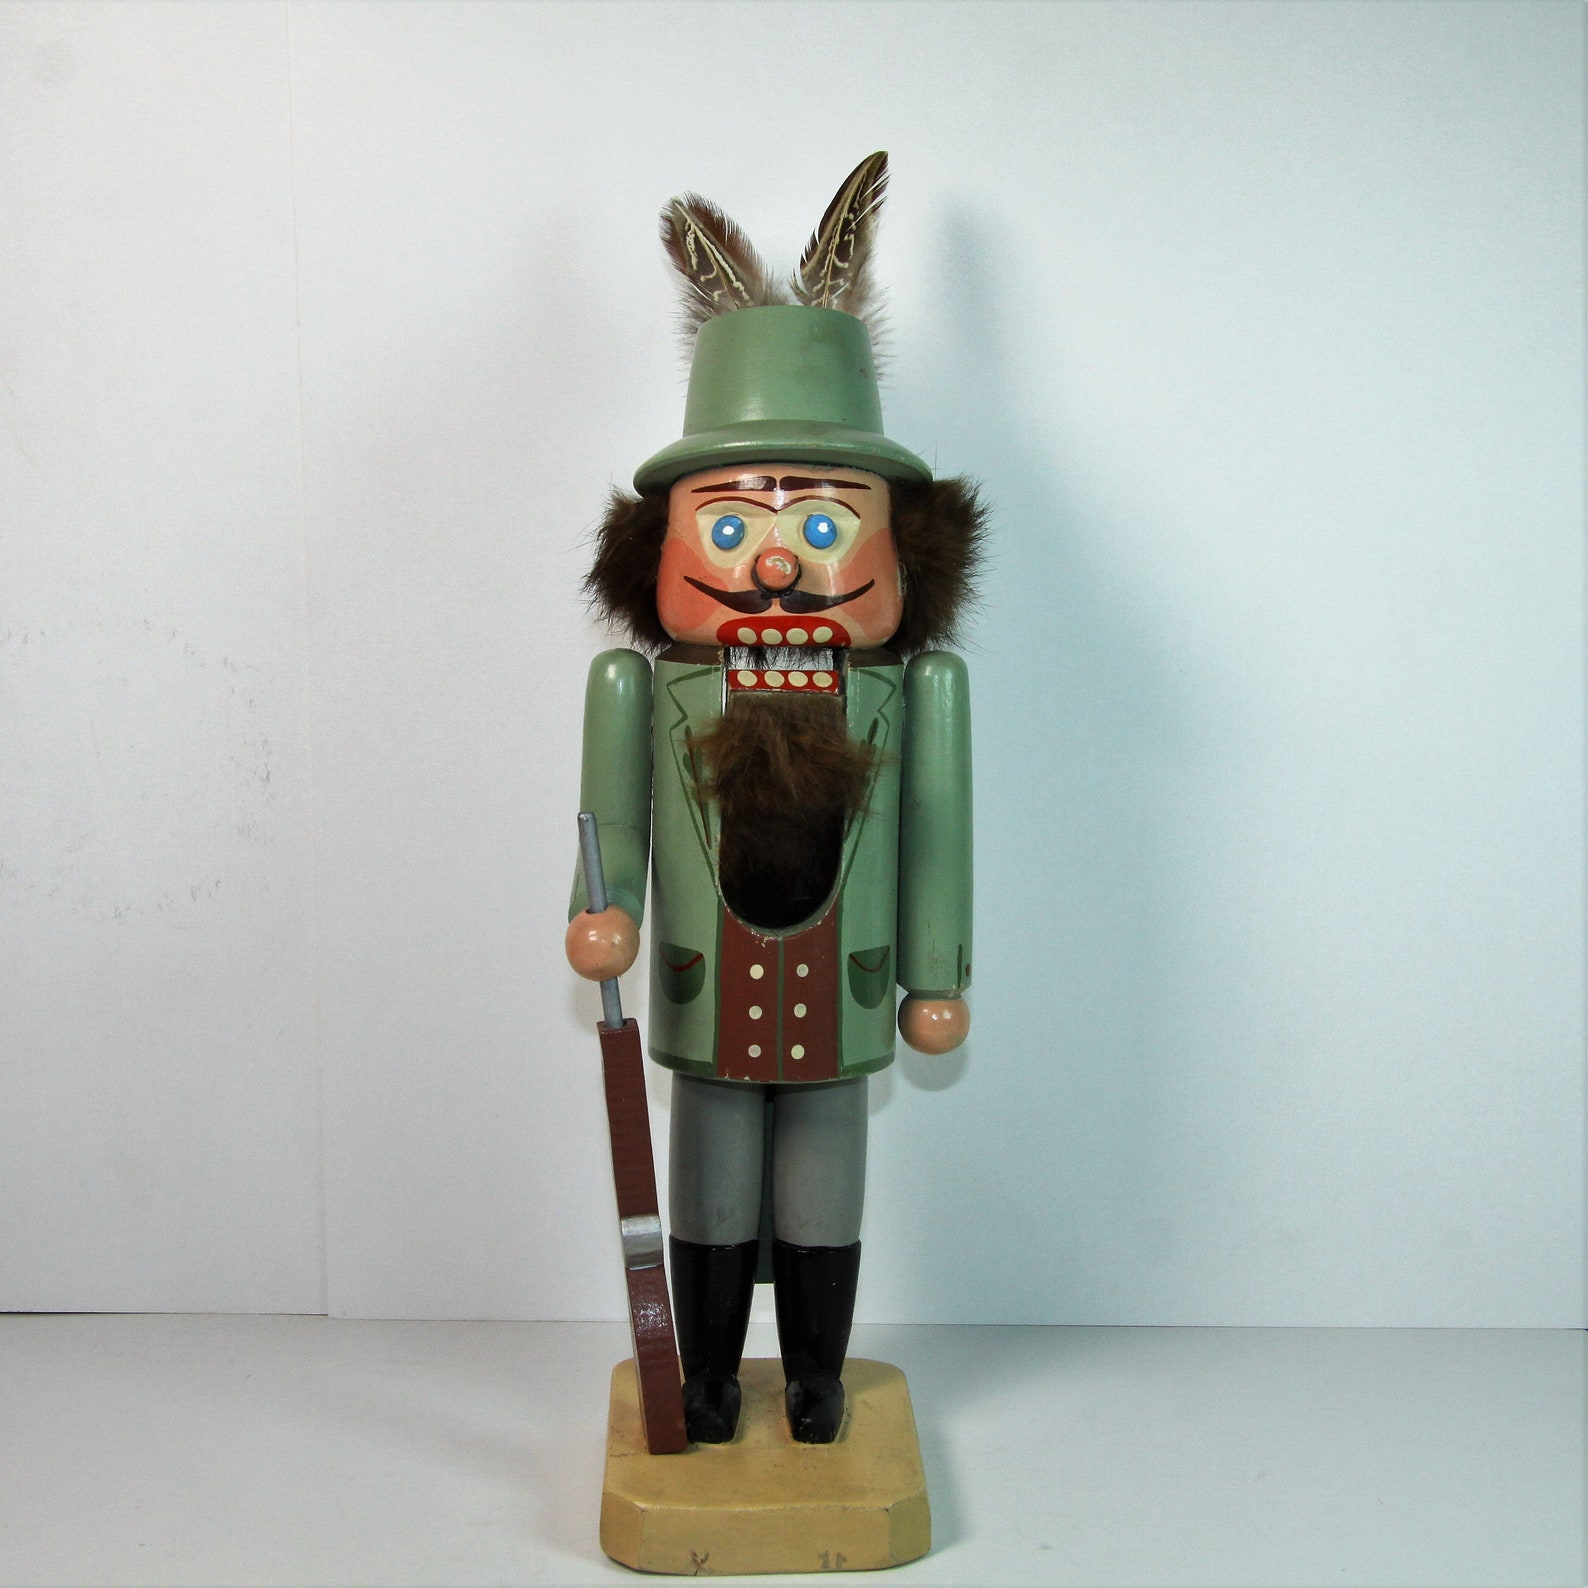 Erzgebirge figure, Beautiful big vintage handpainted wooden german nutcracker, kuhnert erzgebirge hunter,forester, nutcracker